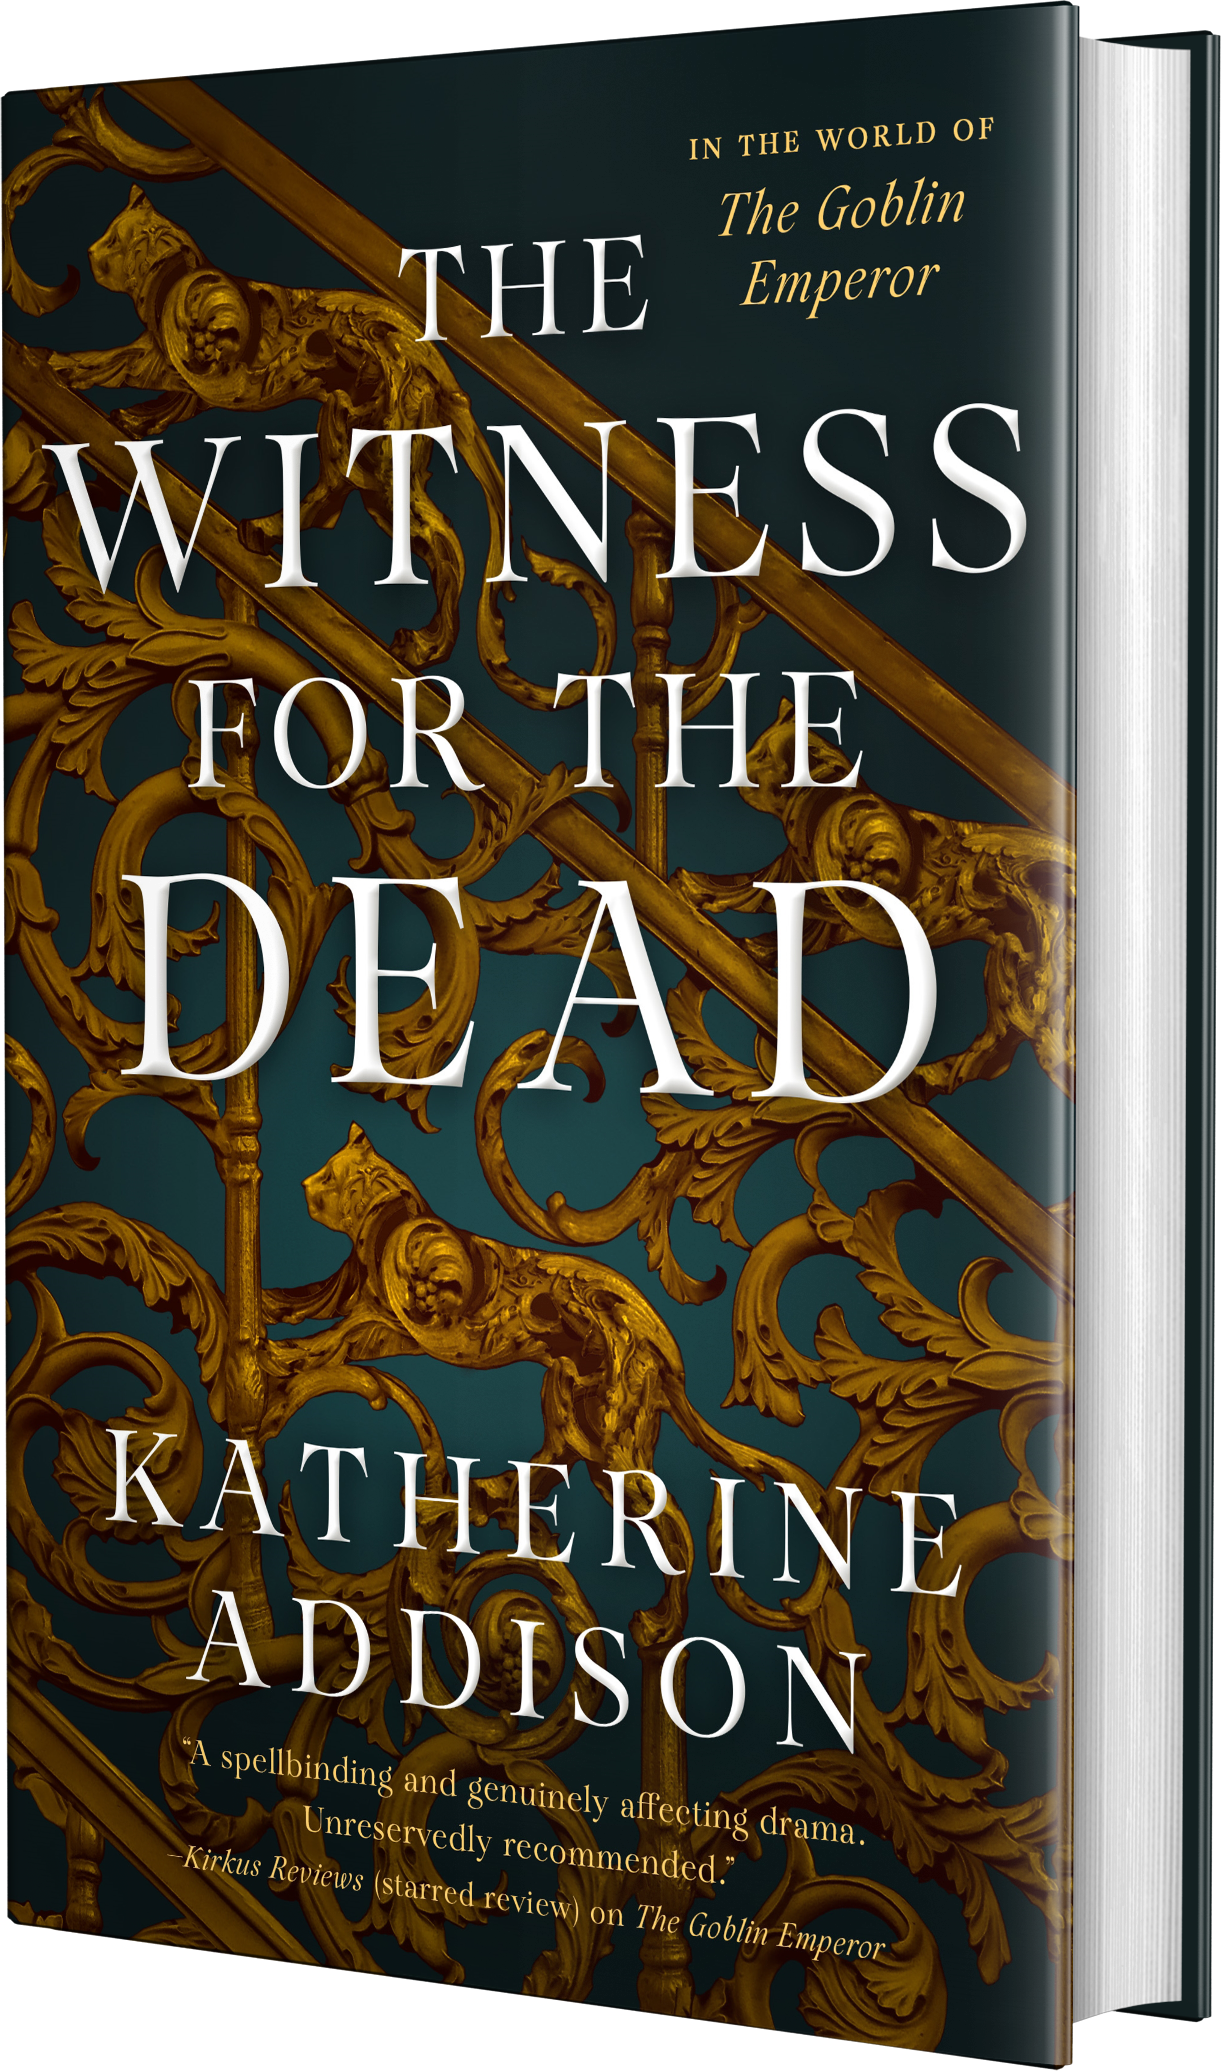 The Witness for the Dead by Katherine Addison